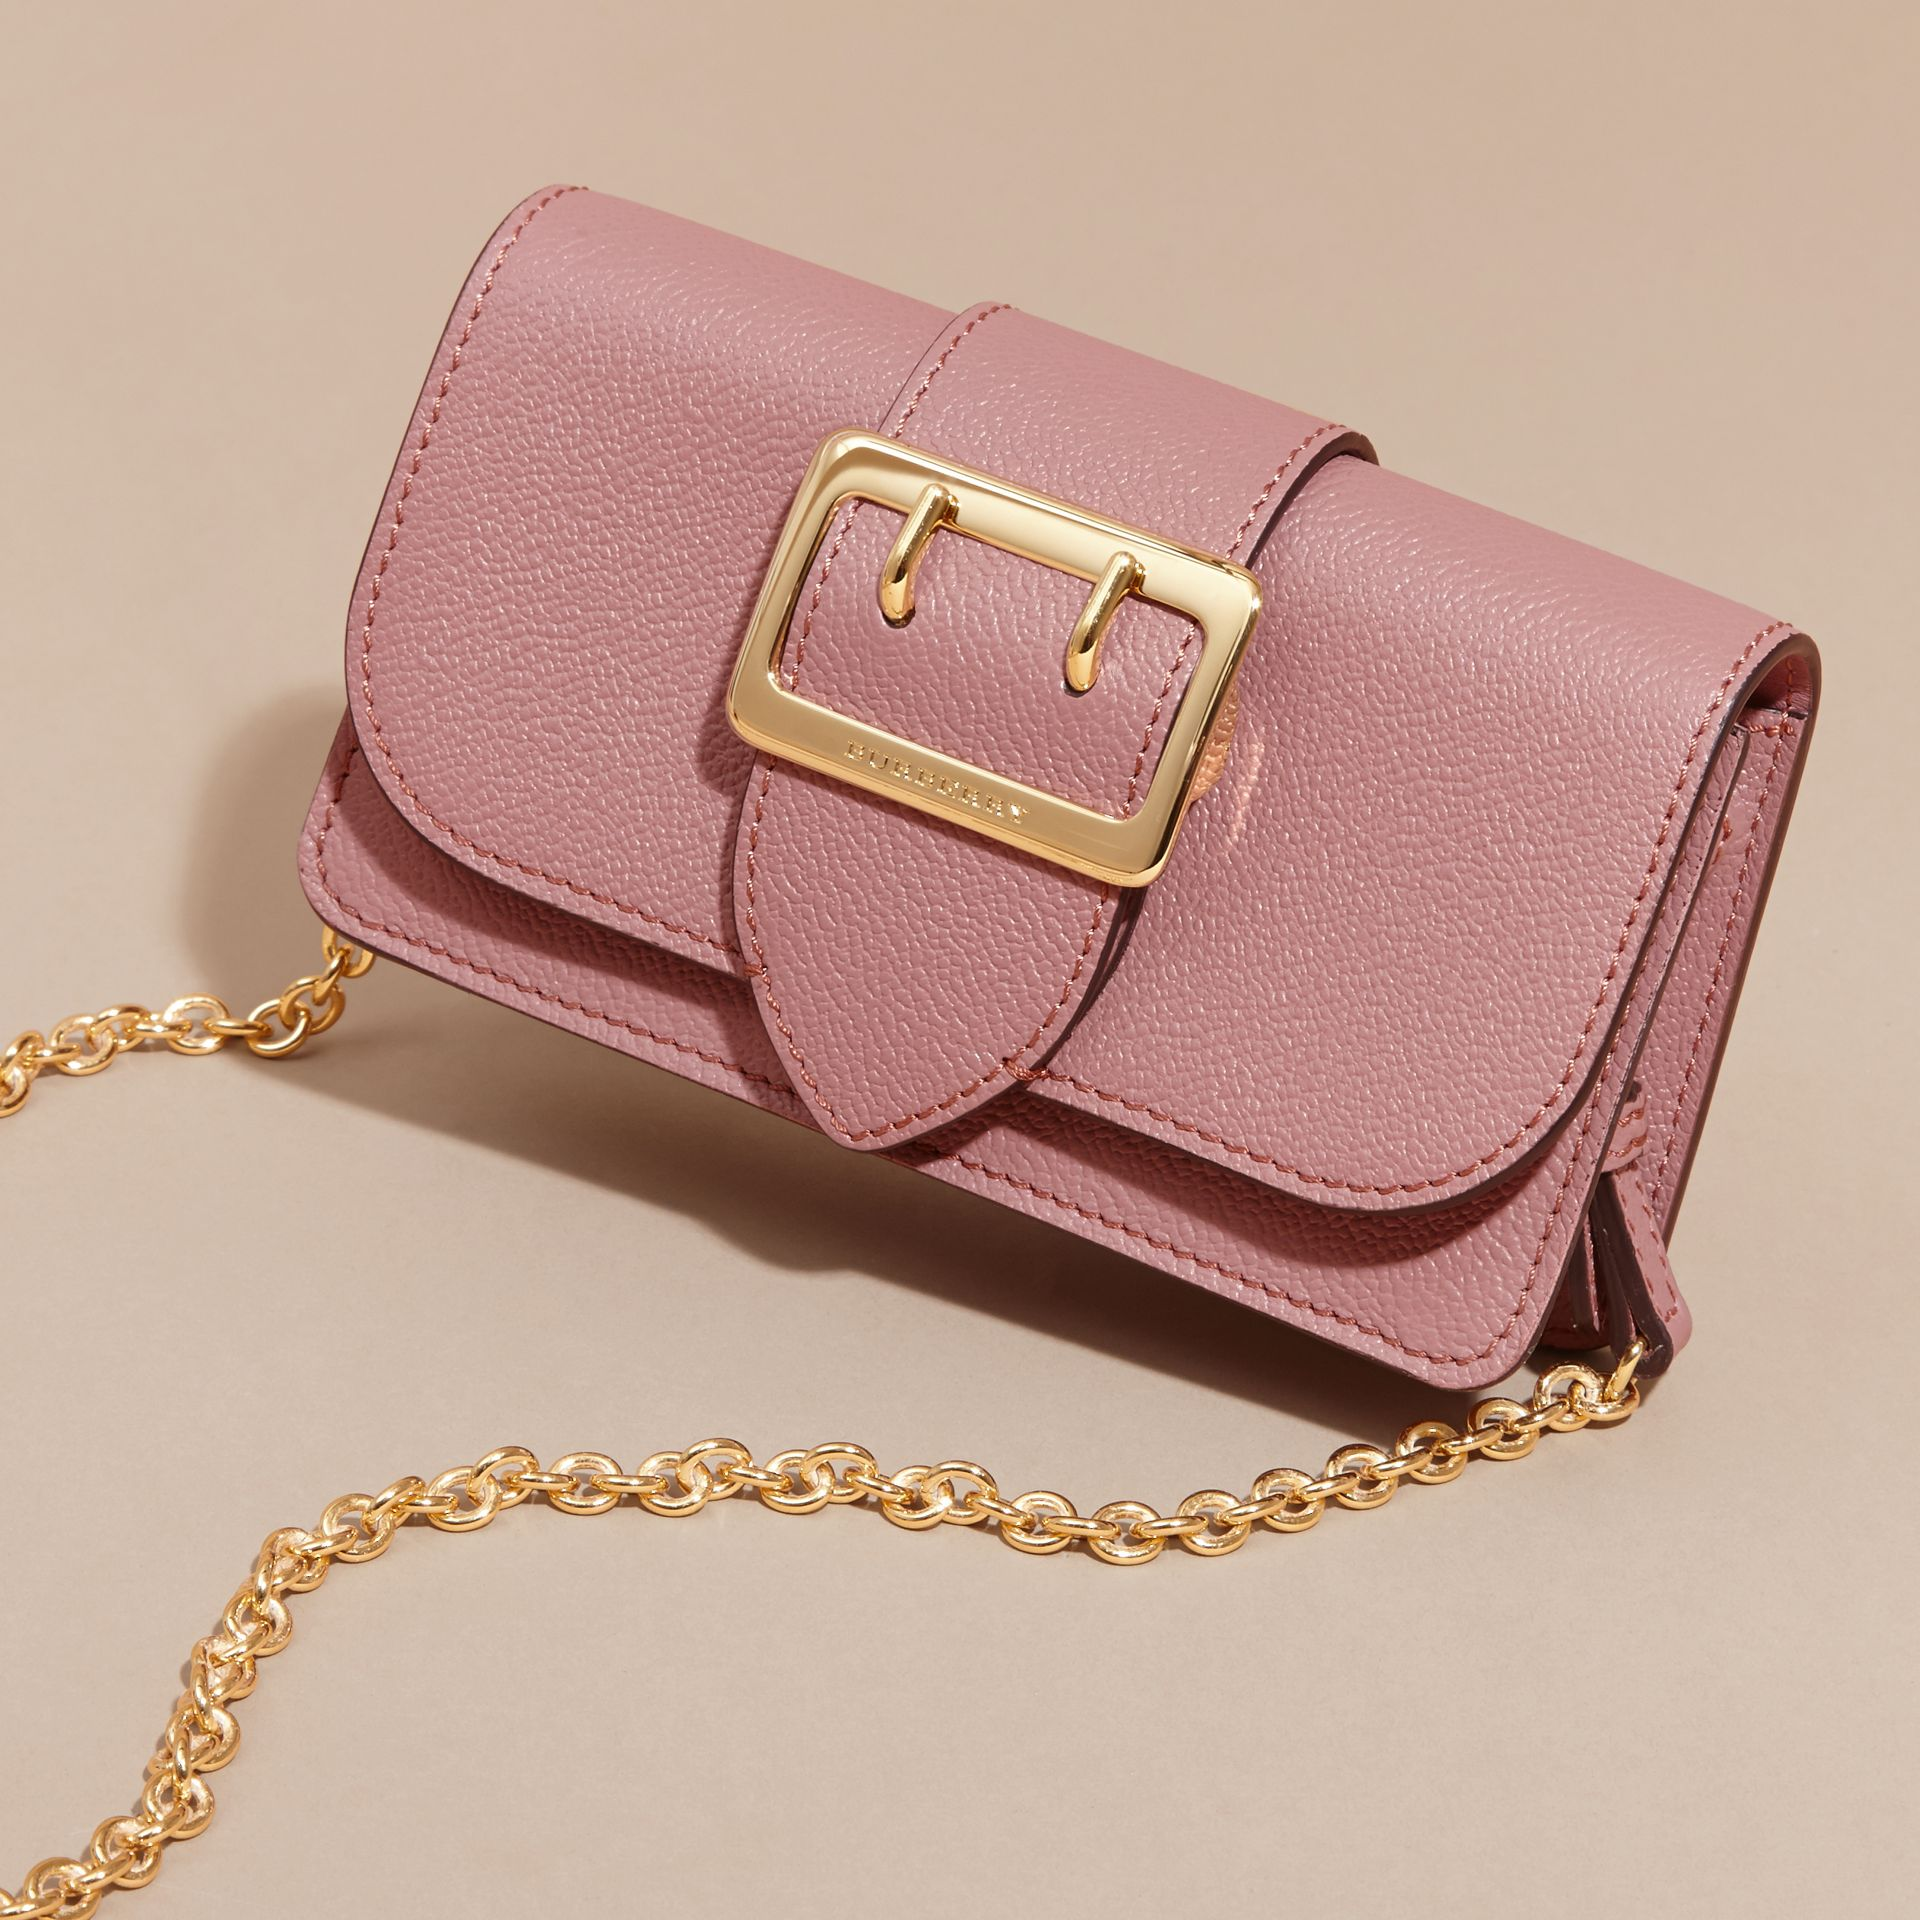 Borsa The Buckle mini in pelle a grana (Rosa Polvere) - Donna | Burberry - immagine della galleria 8